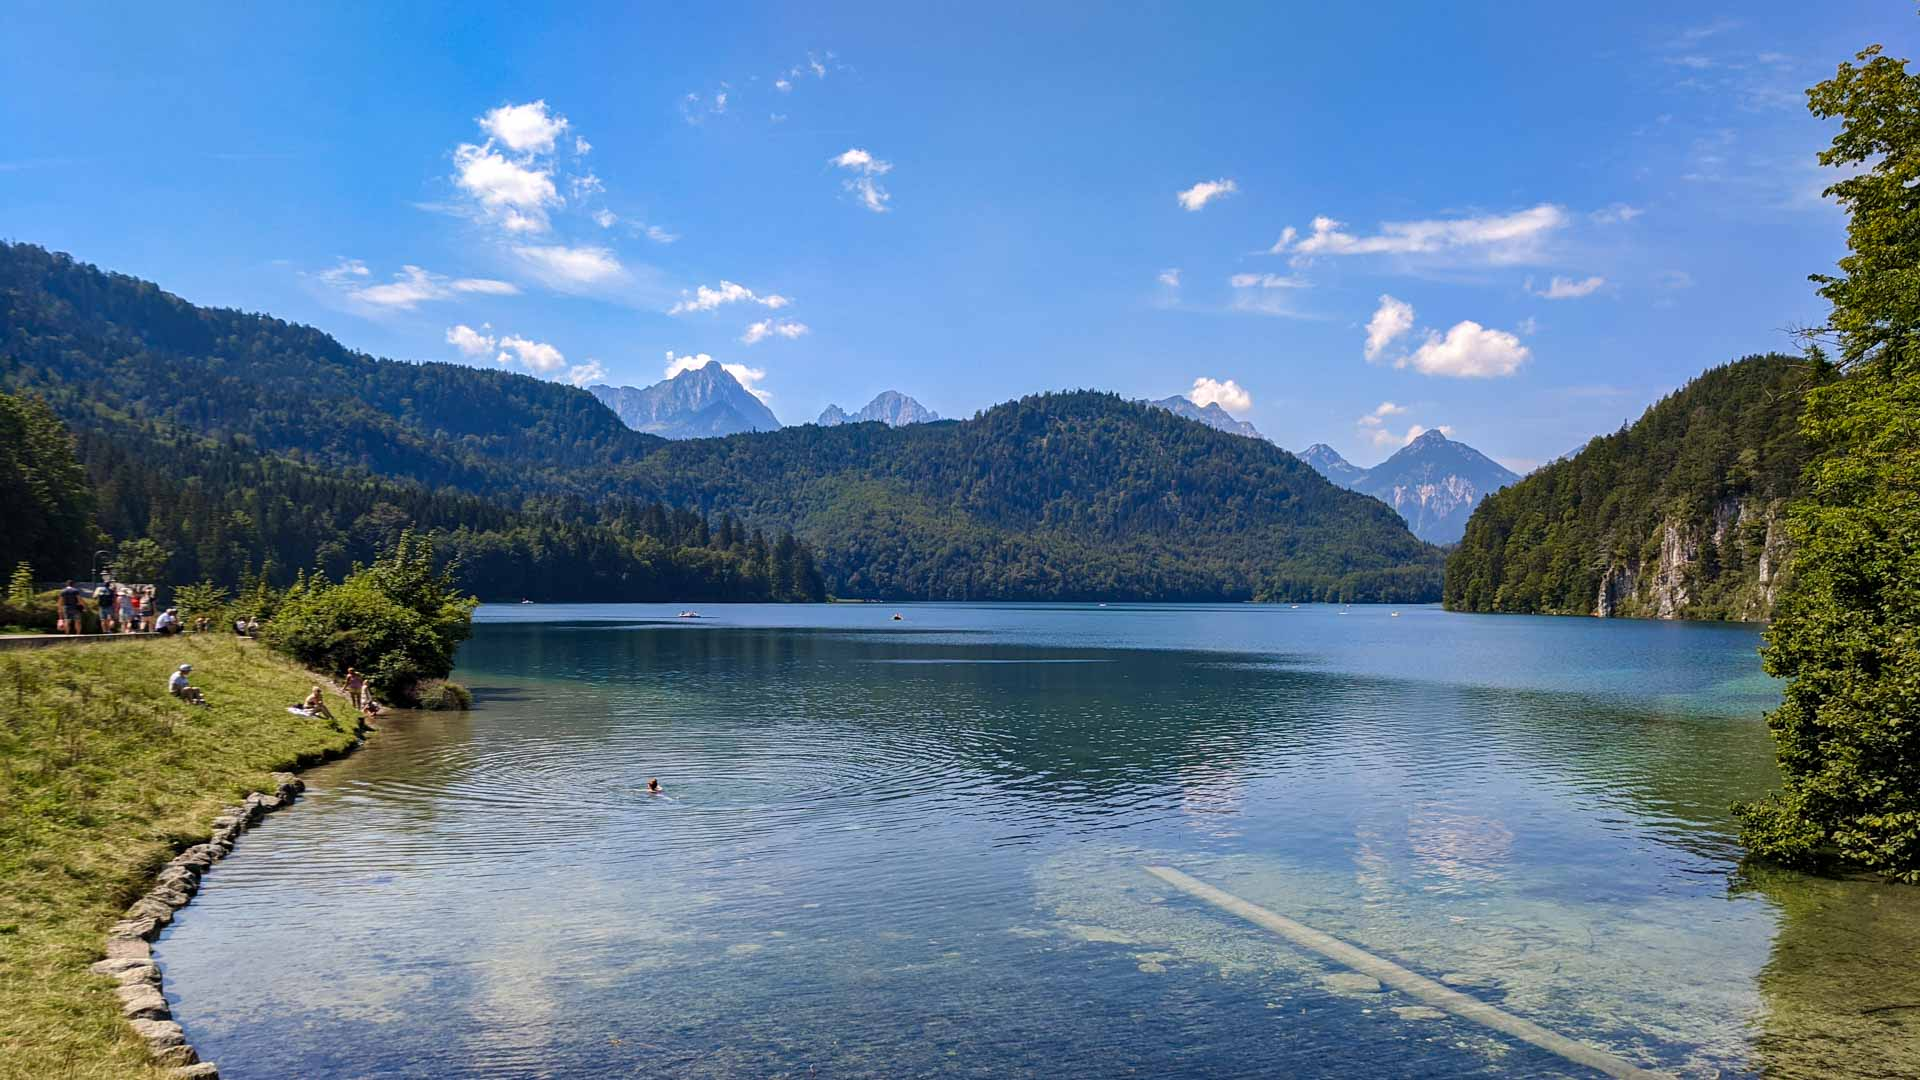 View of the Lake Alpsee